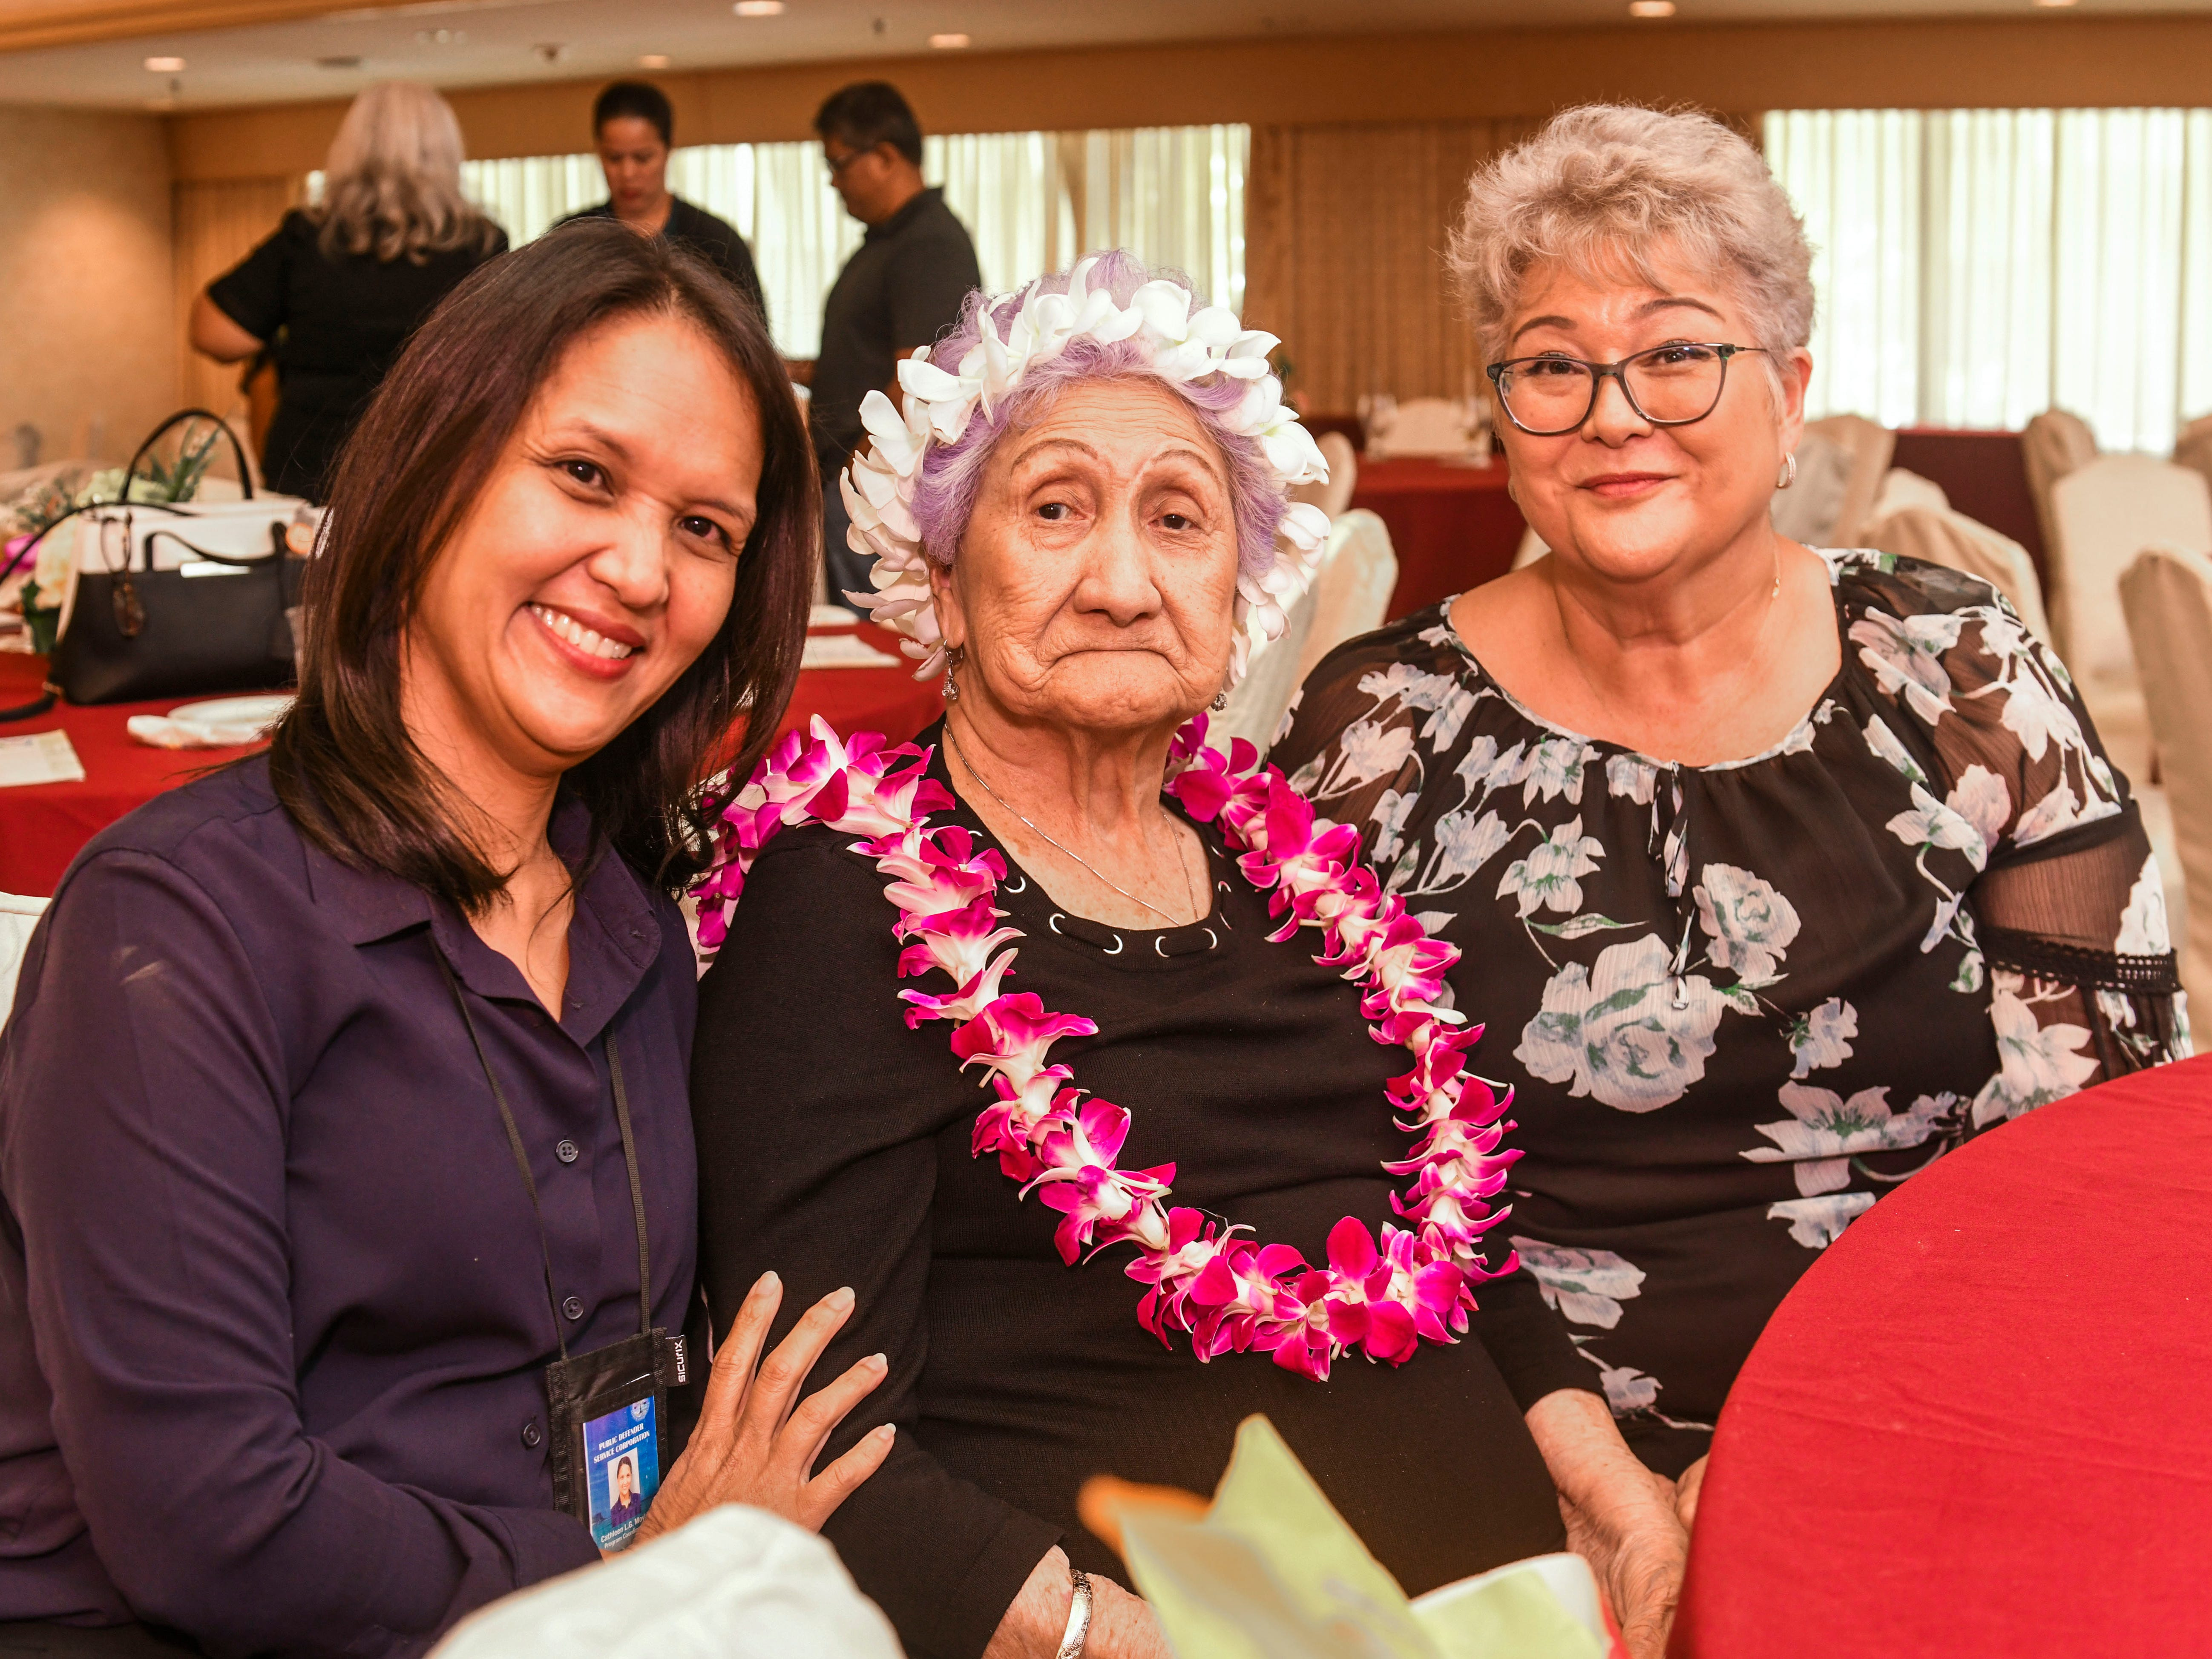 Centenarian Yuk Lan Moylan, 100, center, is flanked by her grandaughter-in-law, Cathy Moylan, left, and daughter, Leialoha Alston, during the 2019 Centenarian Celebration, hosted by the Department of Public Health and Social Services, at the Pacific Star Resort & Spa in Tumon on Thursday, May 9, 2019.